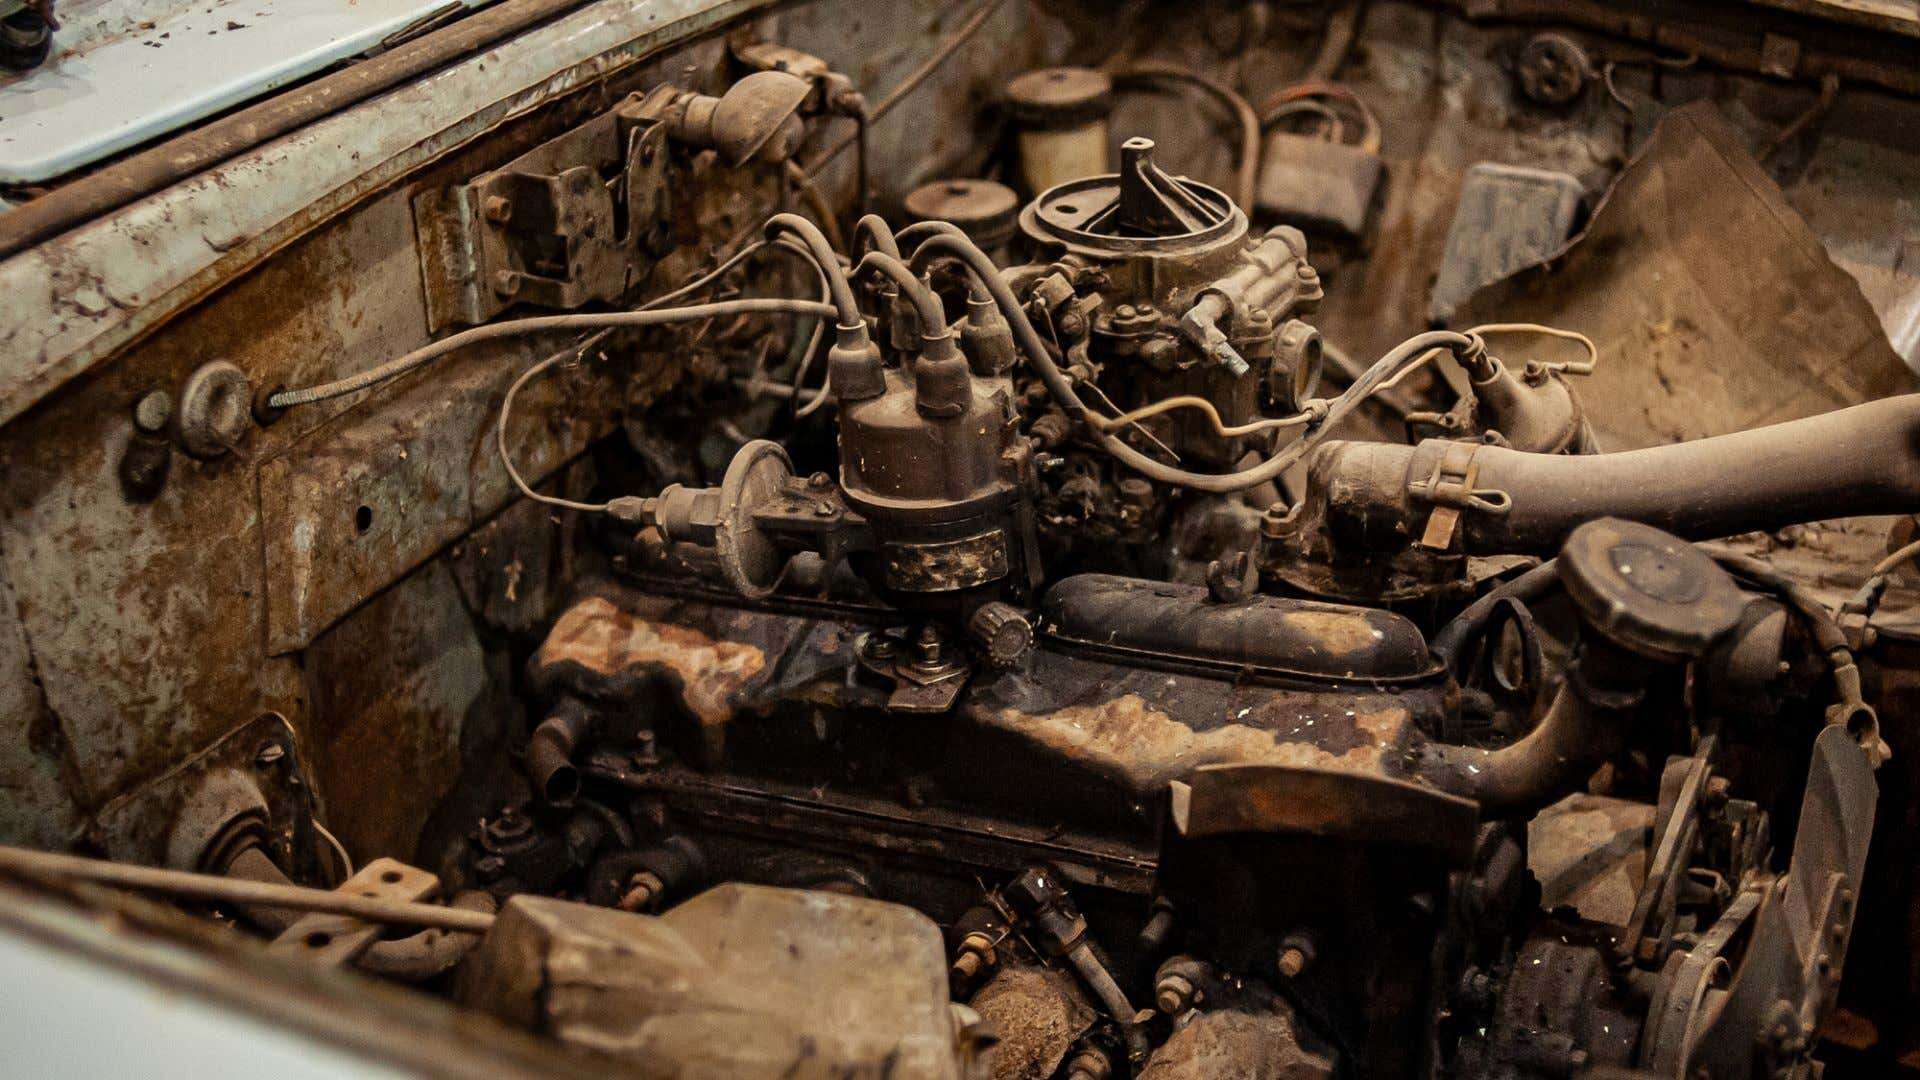 A very dirty, rusting engine.